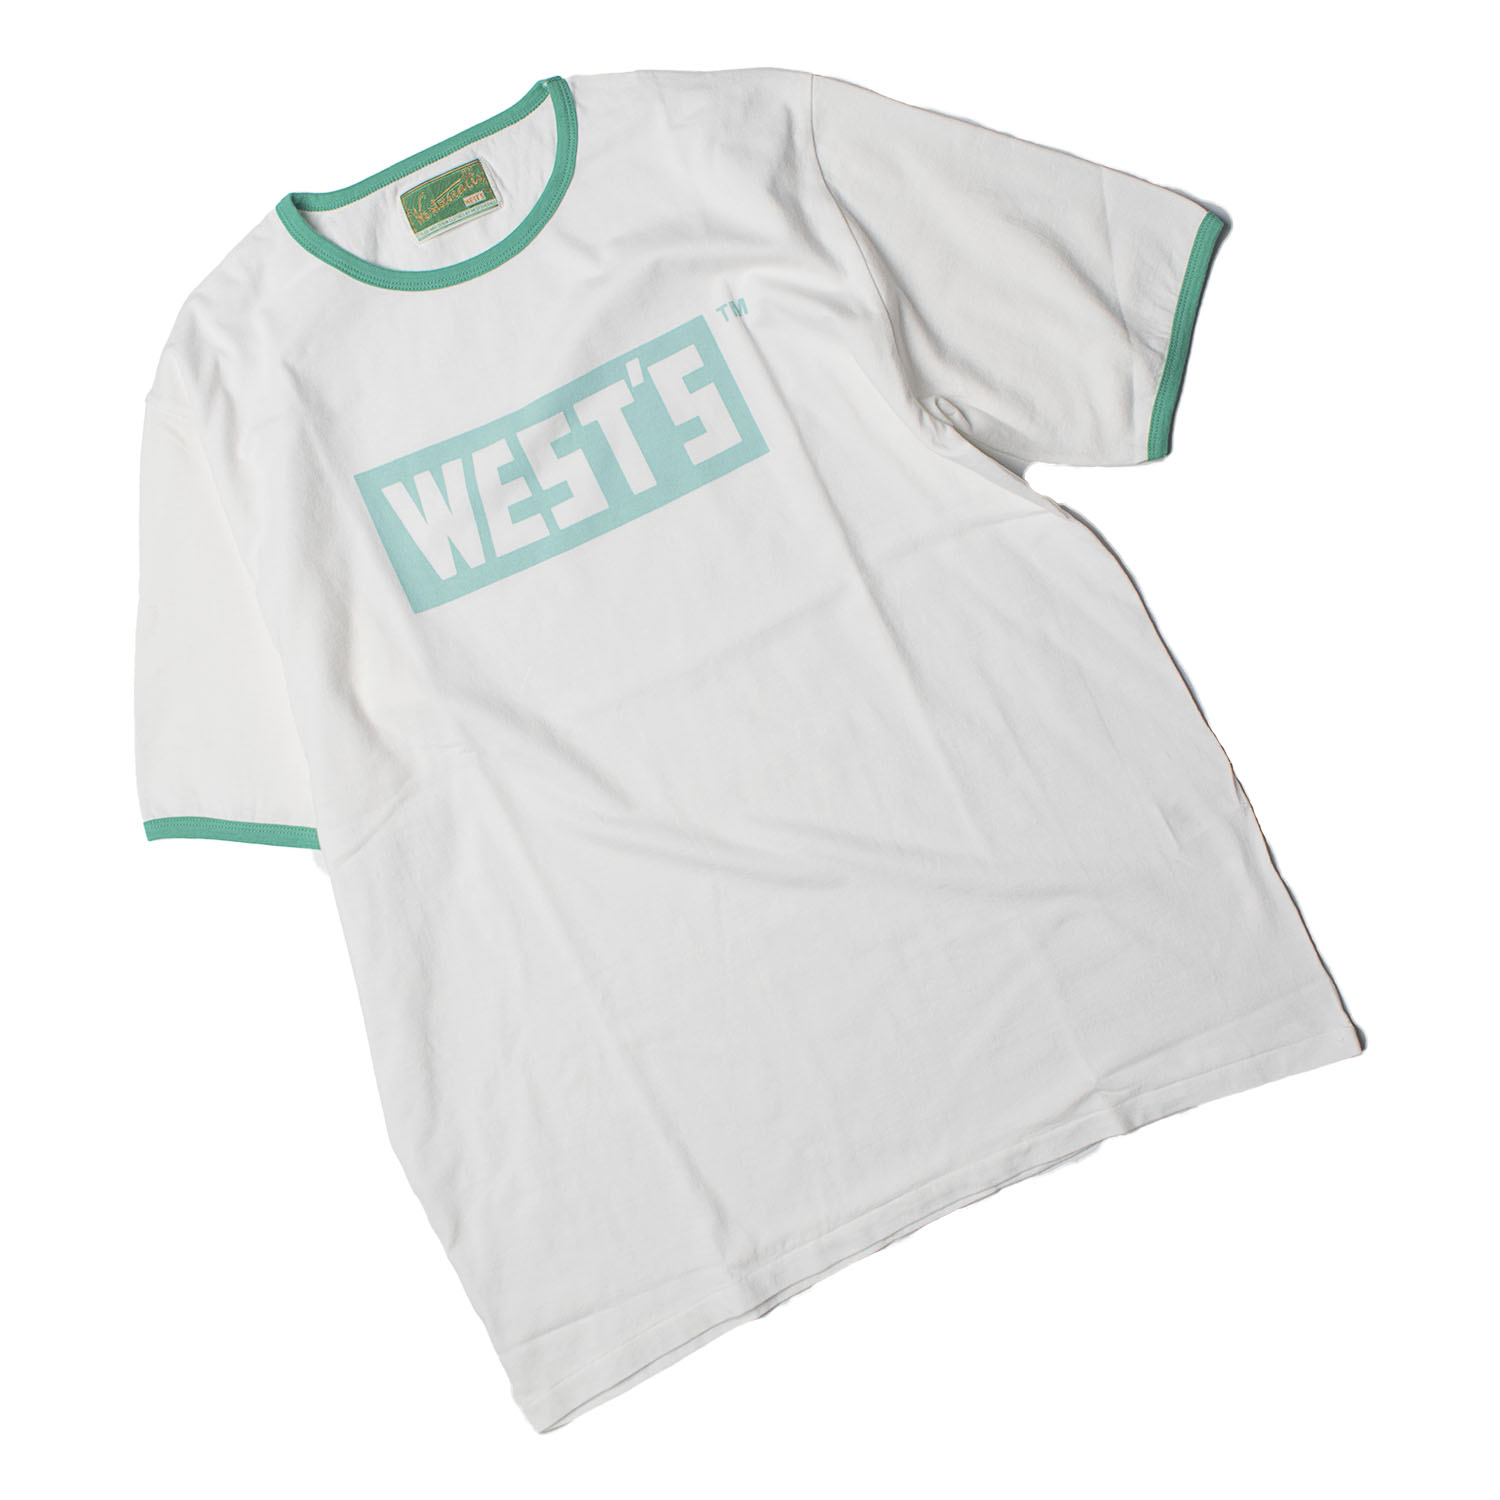 WEST'S Ringer T-Shirts (E.Green)